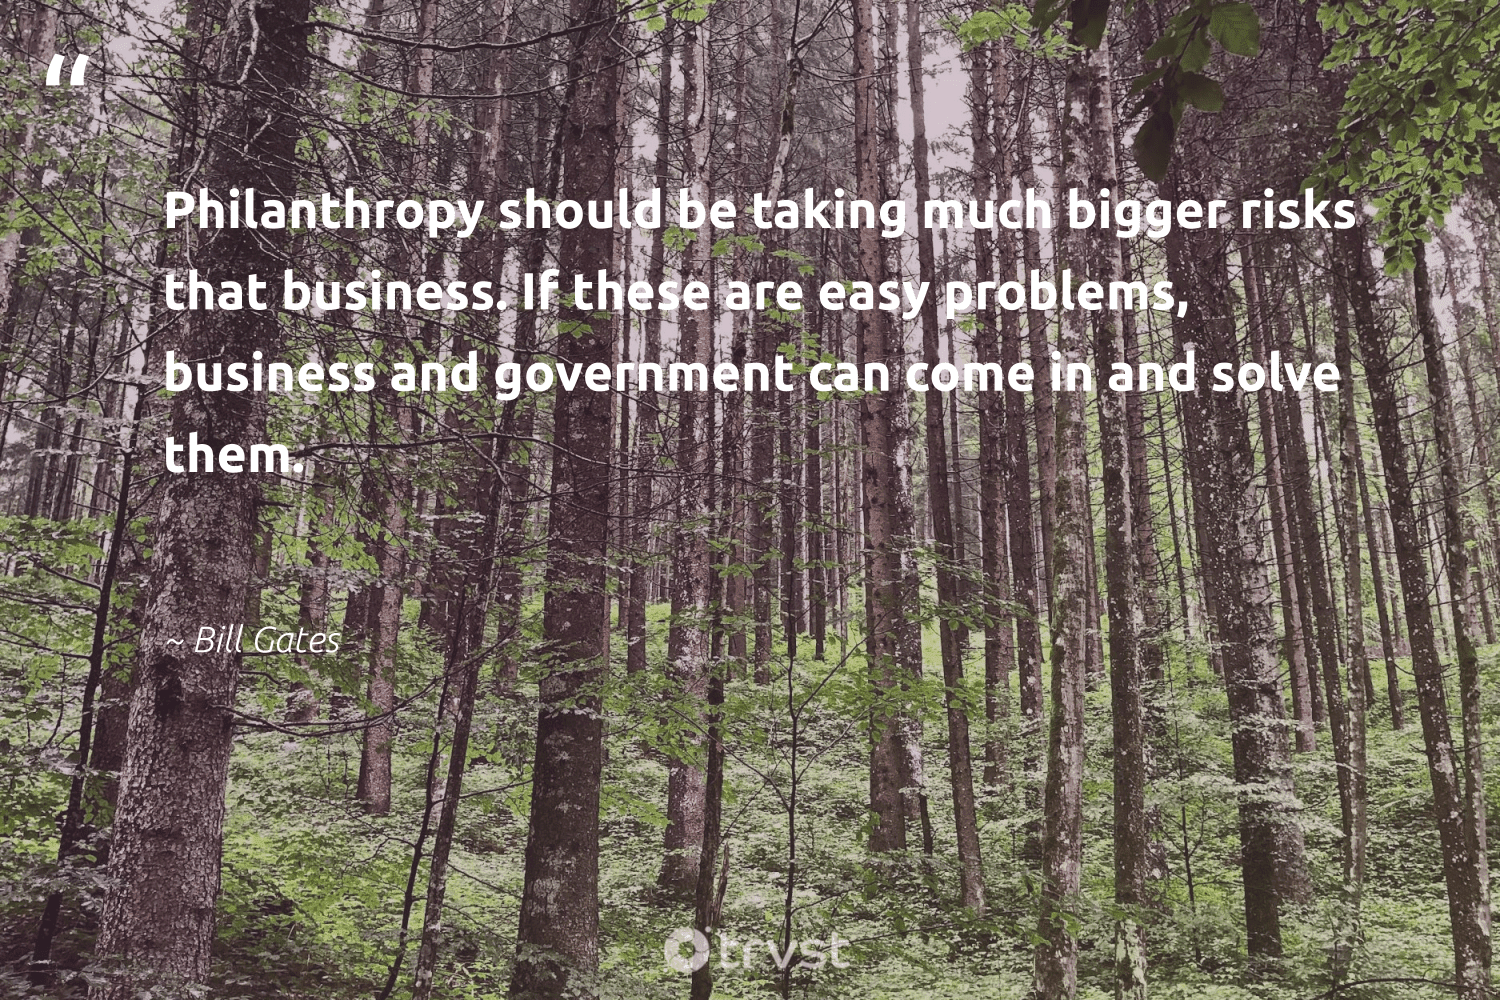 """""""Philanthropy should be taking much bigger risks that business. If these are easy problems, business and government can come in and solve them.""""  - Bill Gates #trvst #quotes #philanthropy #philanthropic #giveforthefuture #changemakers #takeaction #itscooltobekind #togetherwecan #planetearthfirst #socialimpact #socialchange"""